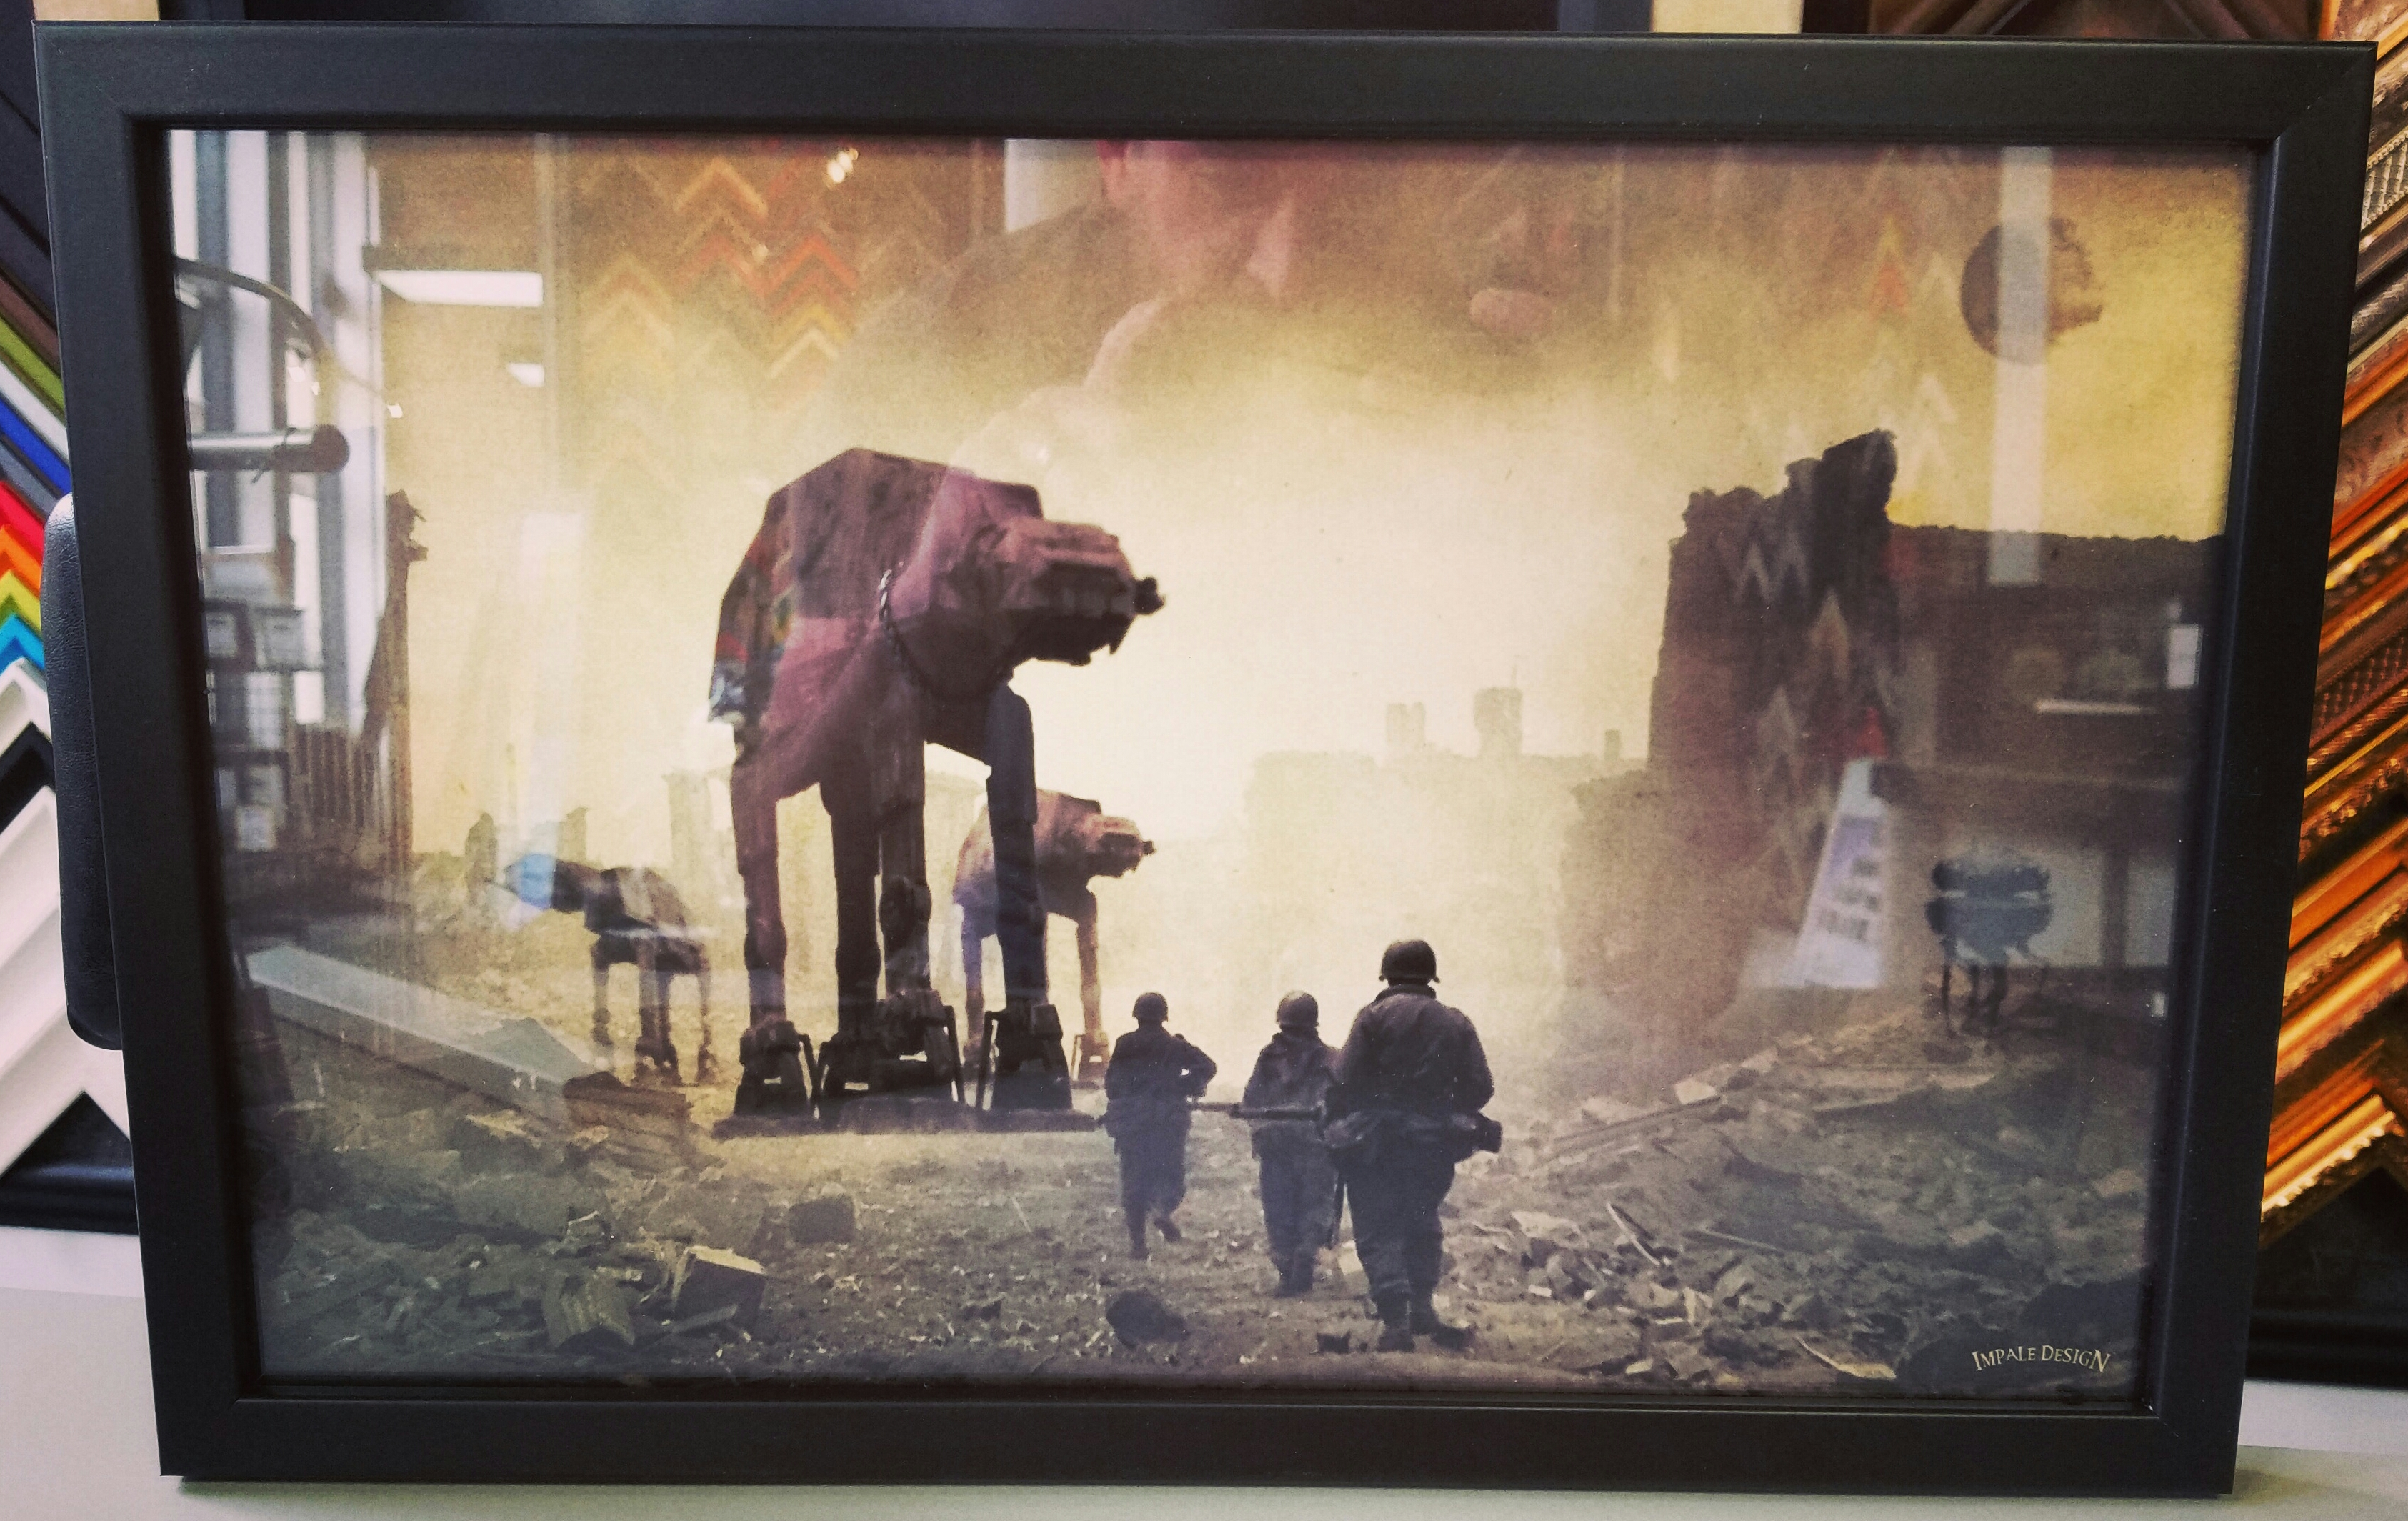 Star Wars Framed Artwork Denver